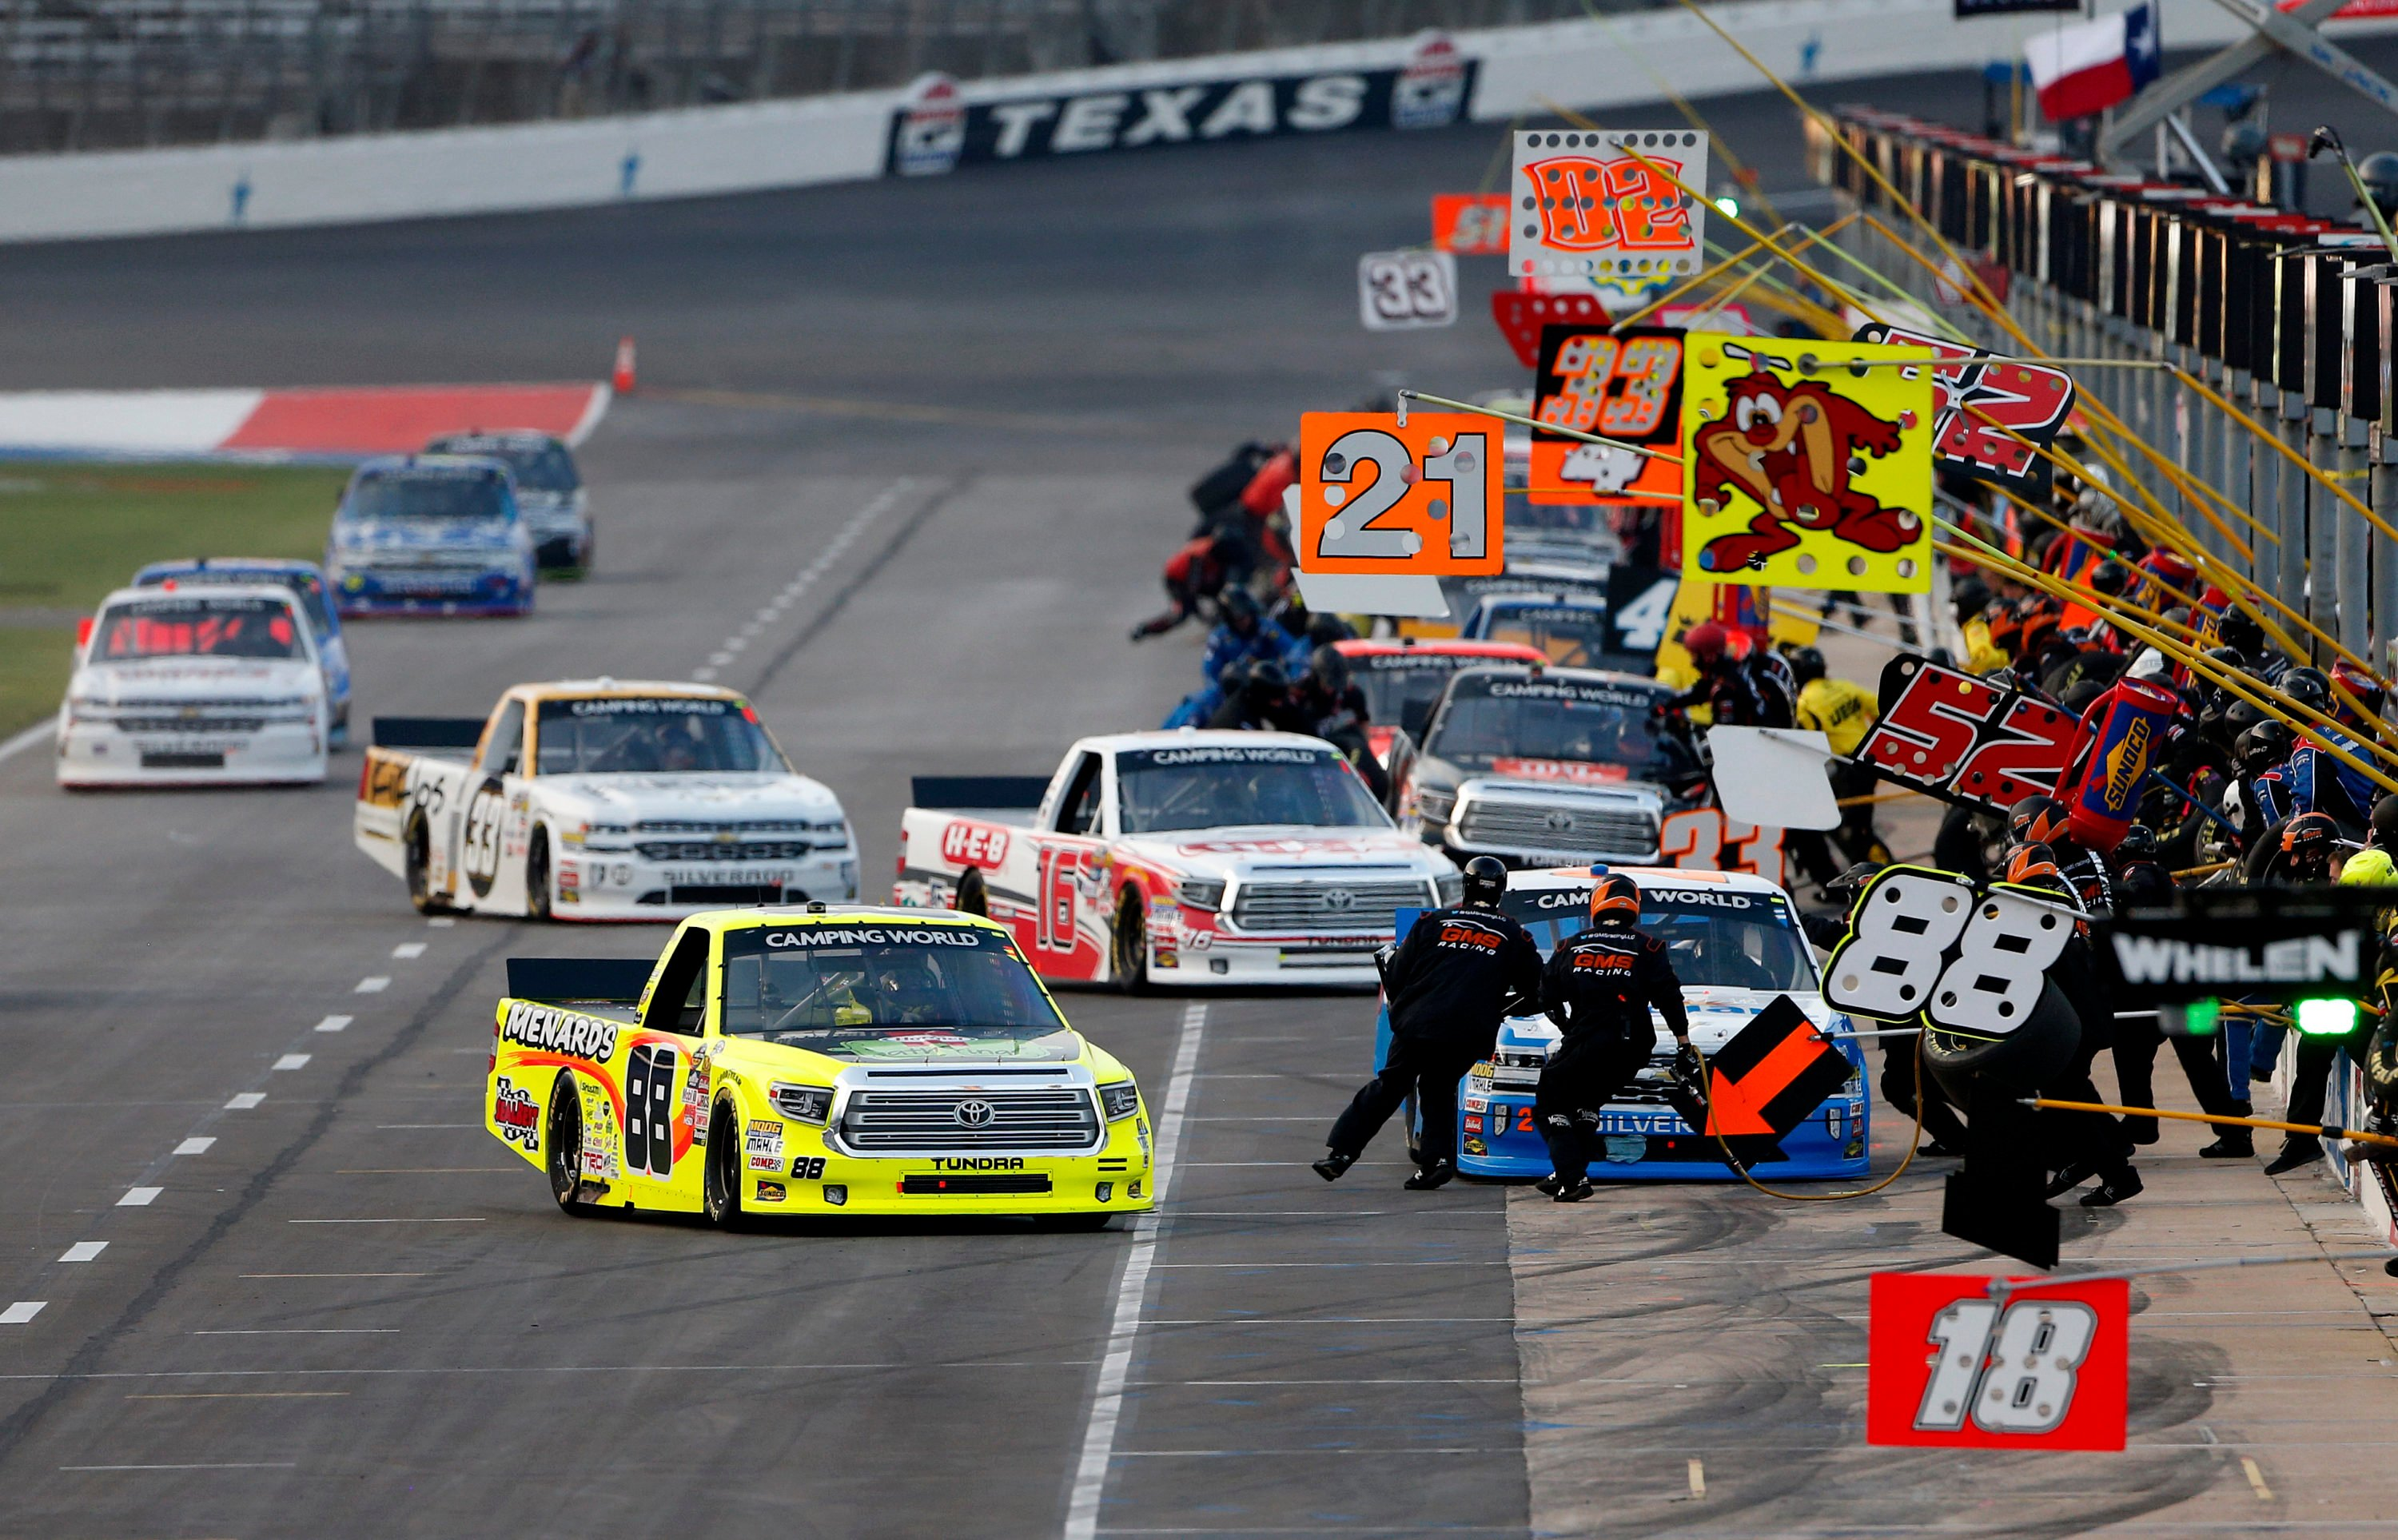 Kevin Harvick wins at Texas earns spot in championship round